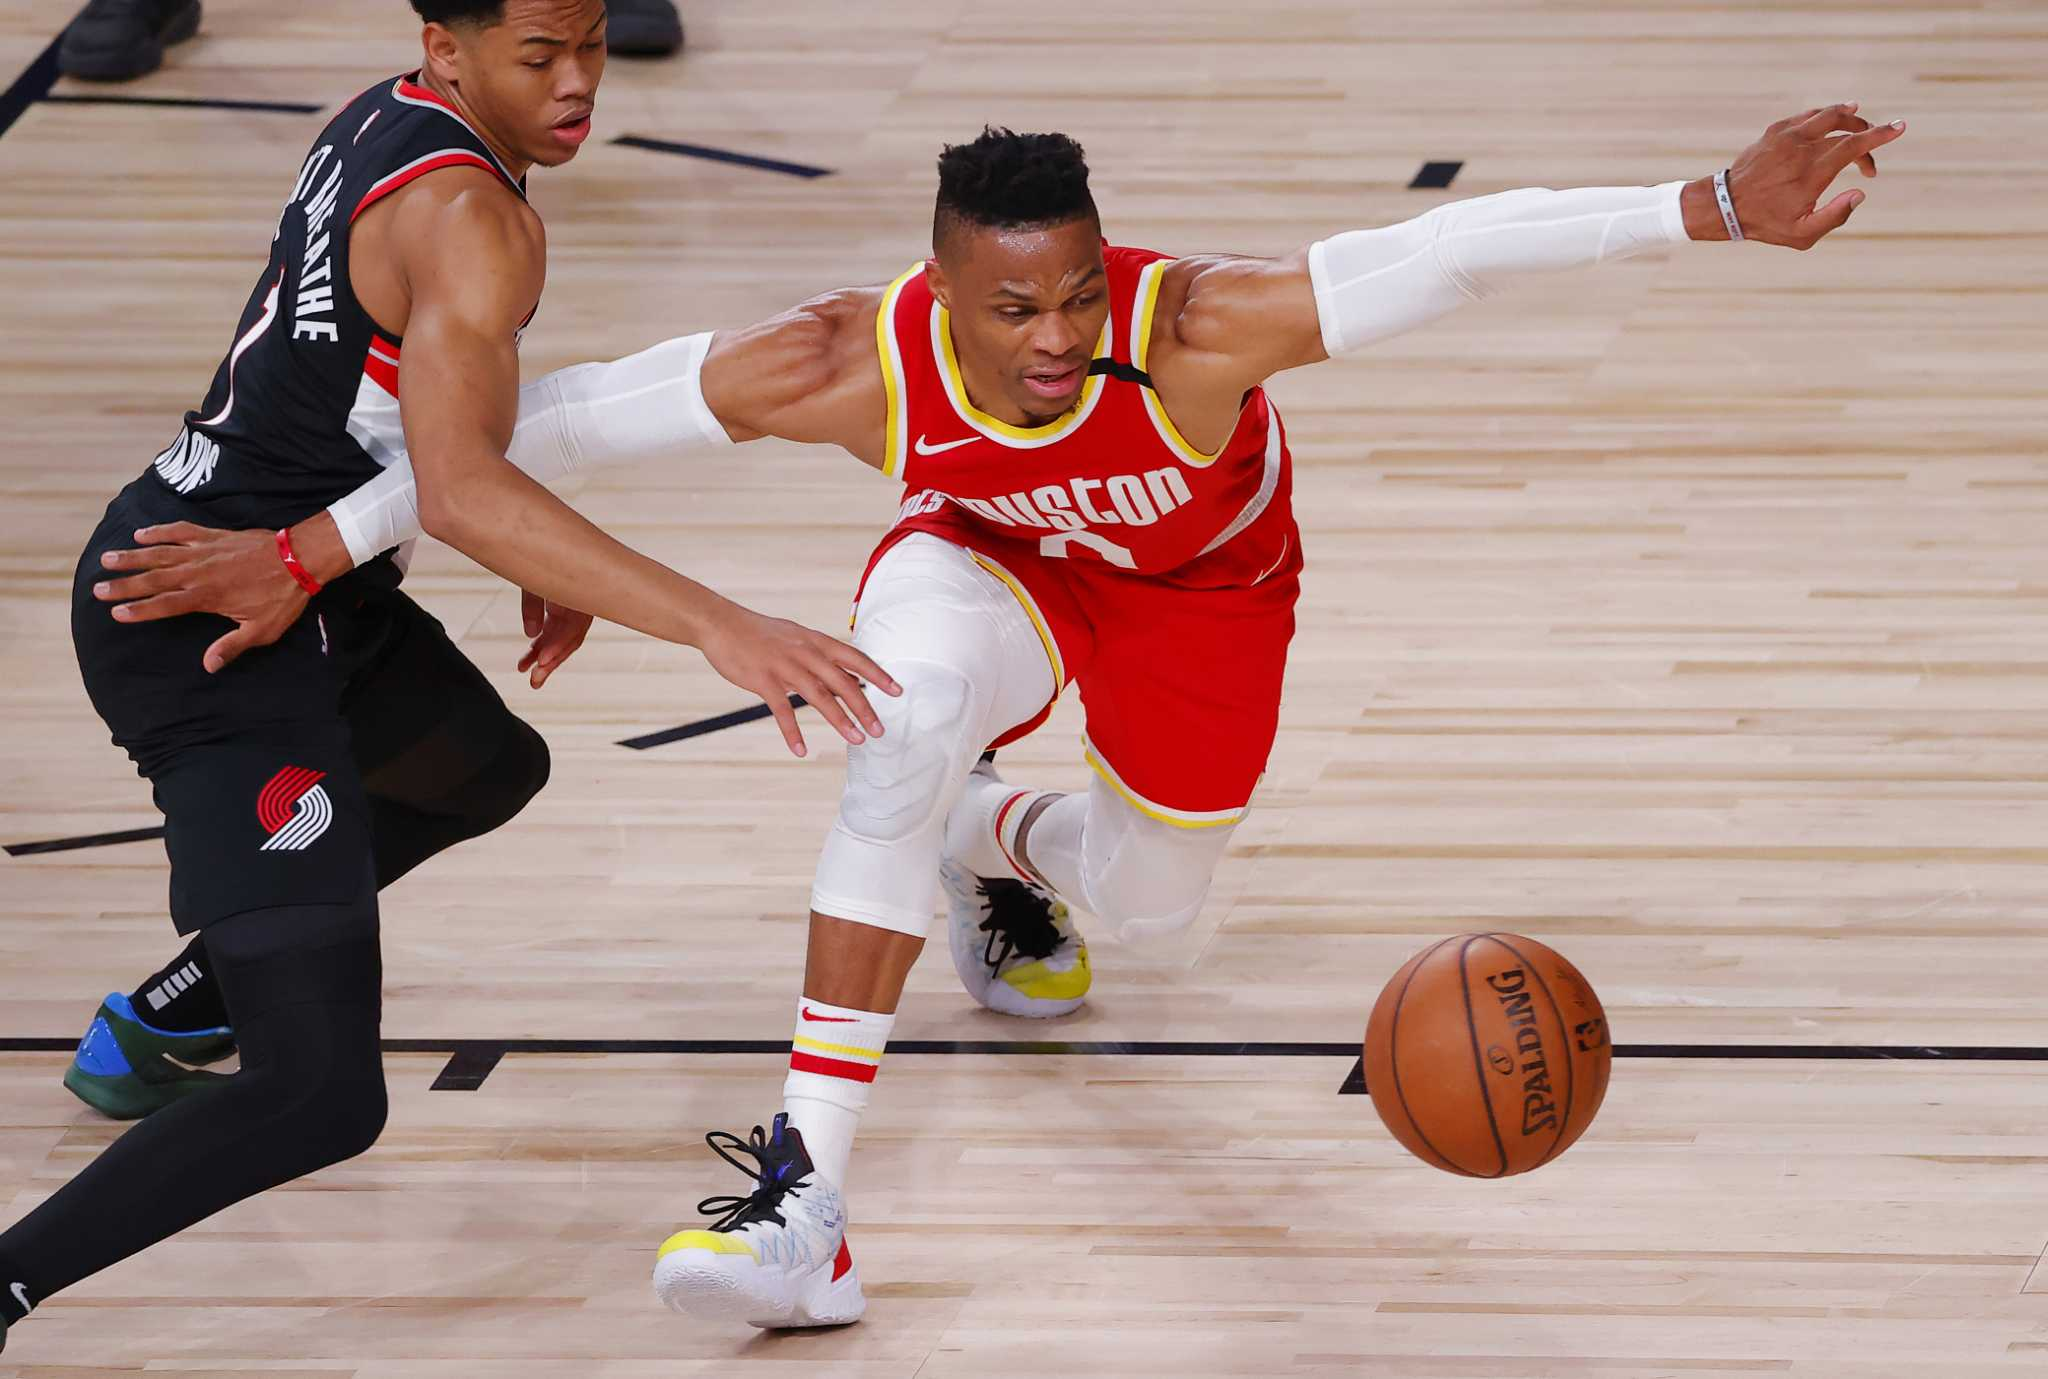 Rockets' Russell Westbrook ruled out of Friday's game, will be reevaluated before playoffs